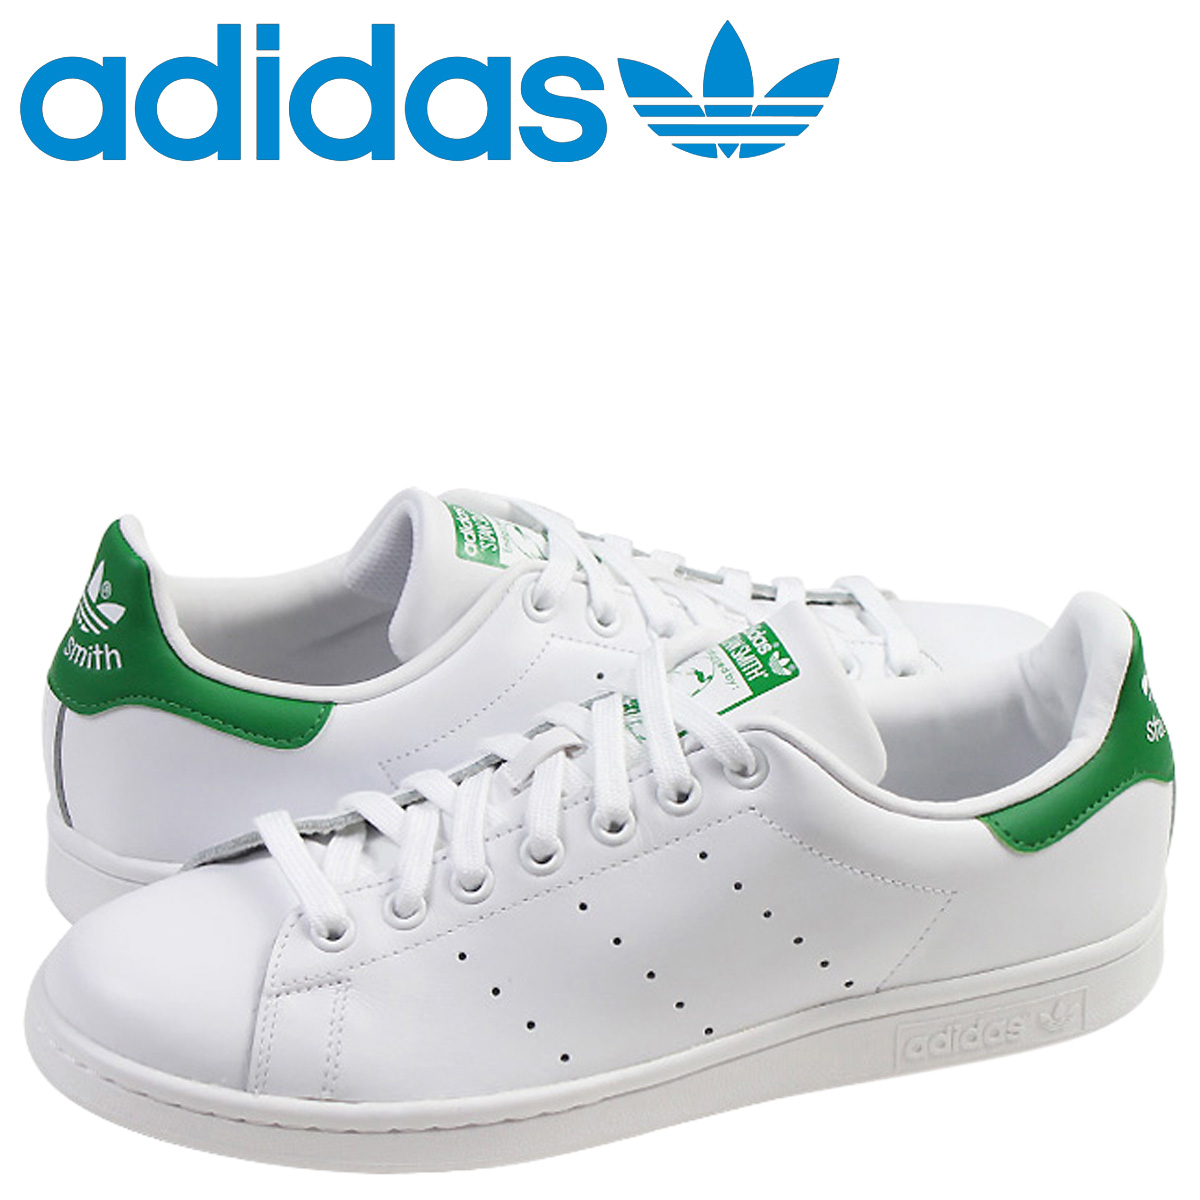 bce075f4a08  SOLD OUT  adidas originals adidas Originals STAN SMITH sneakers Stan Smith  leather men s women s M20324 white green unisex  regular